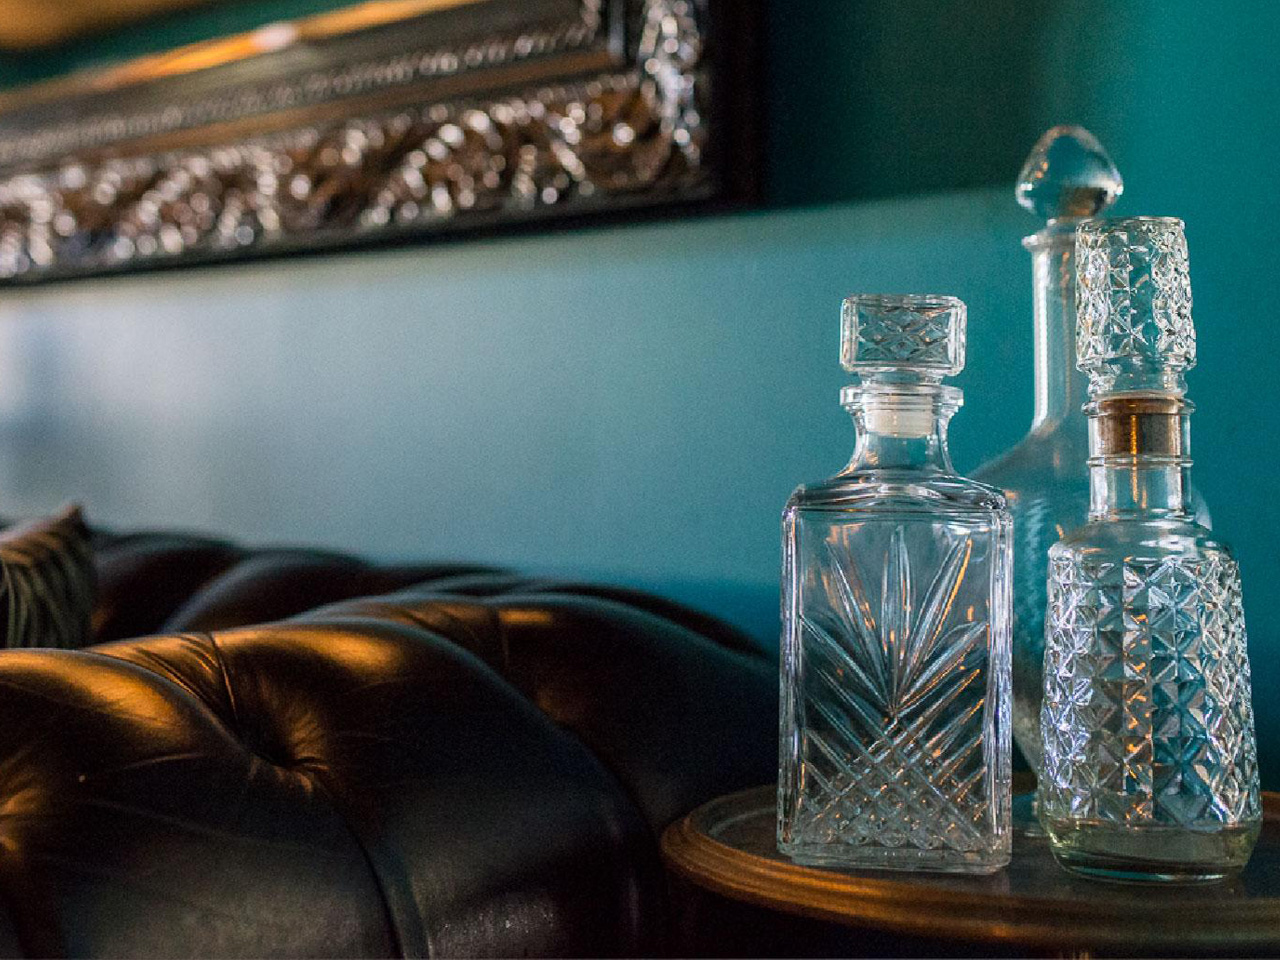 Liquor bottles in foreground next to leather sofa and blue walled room